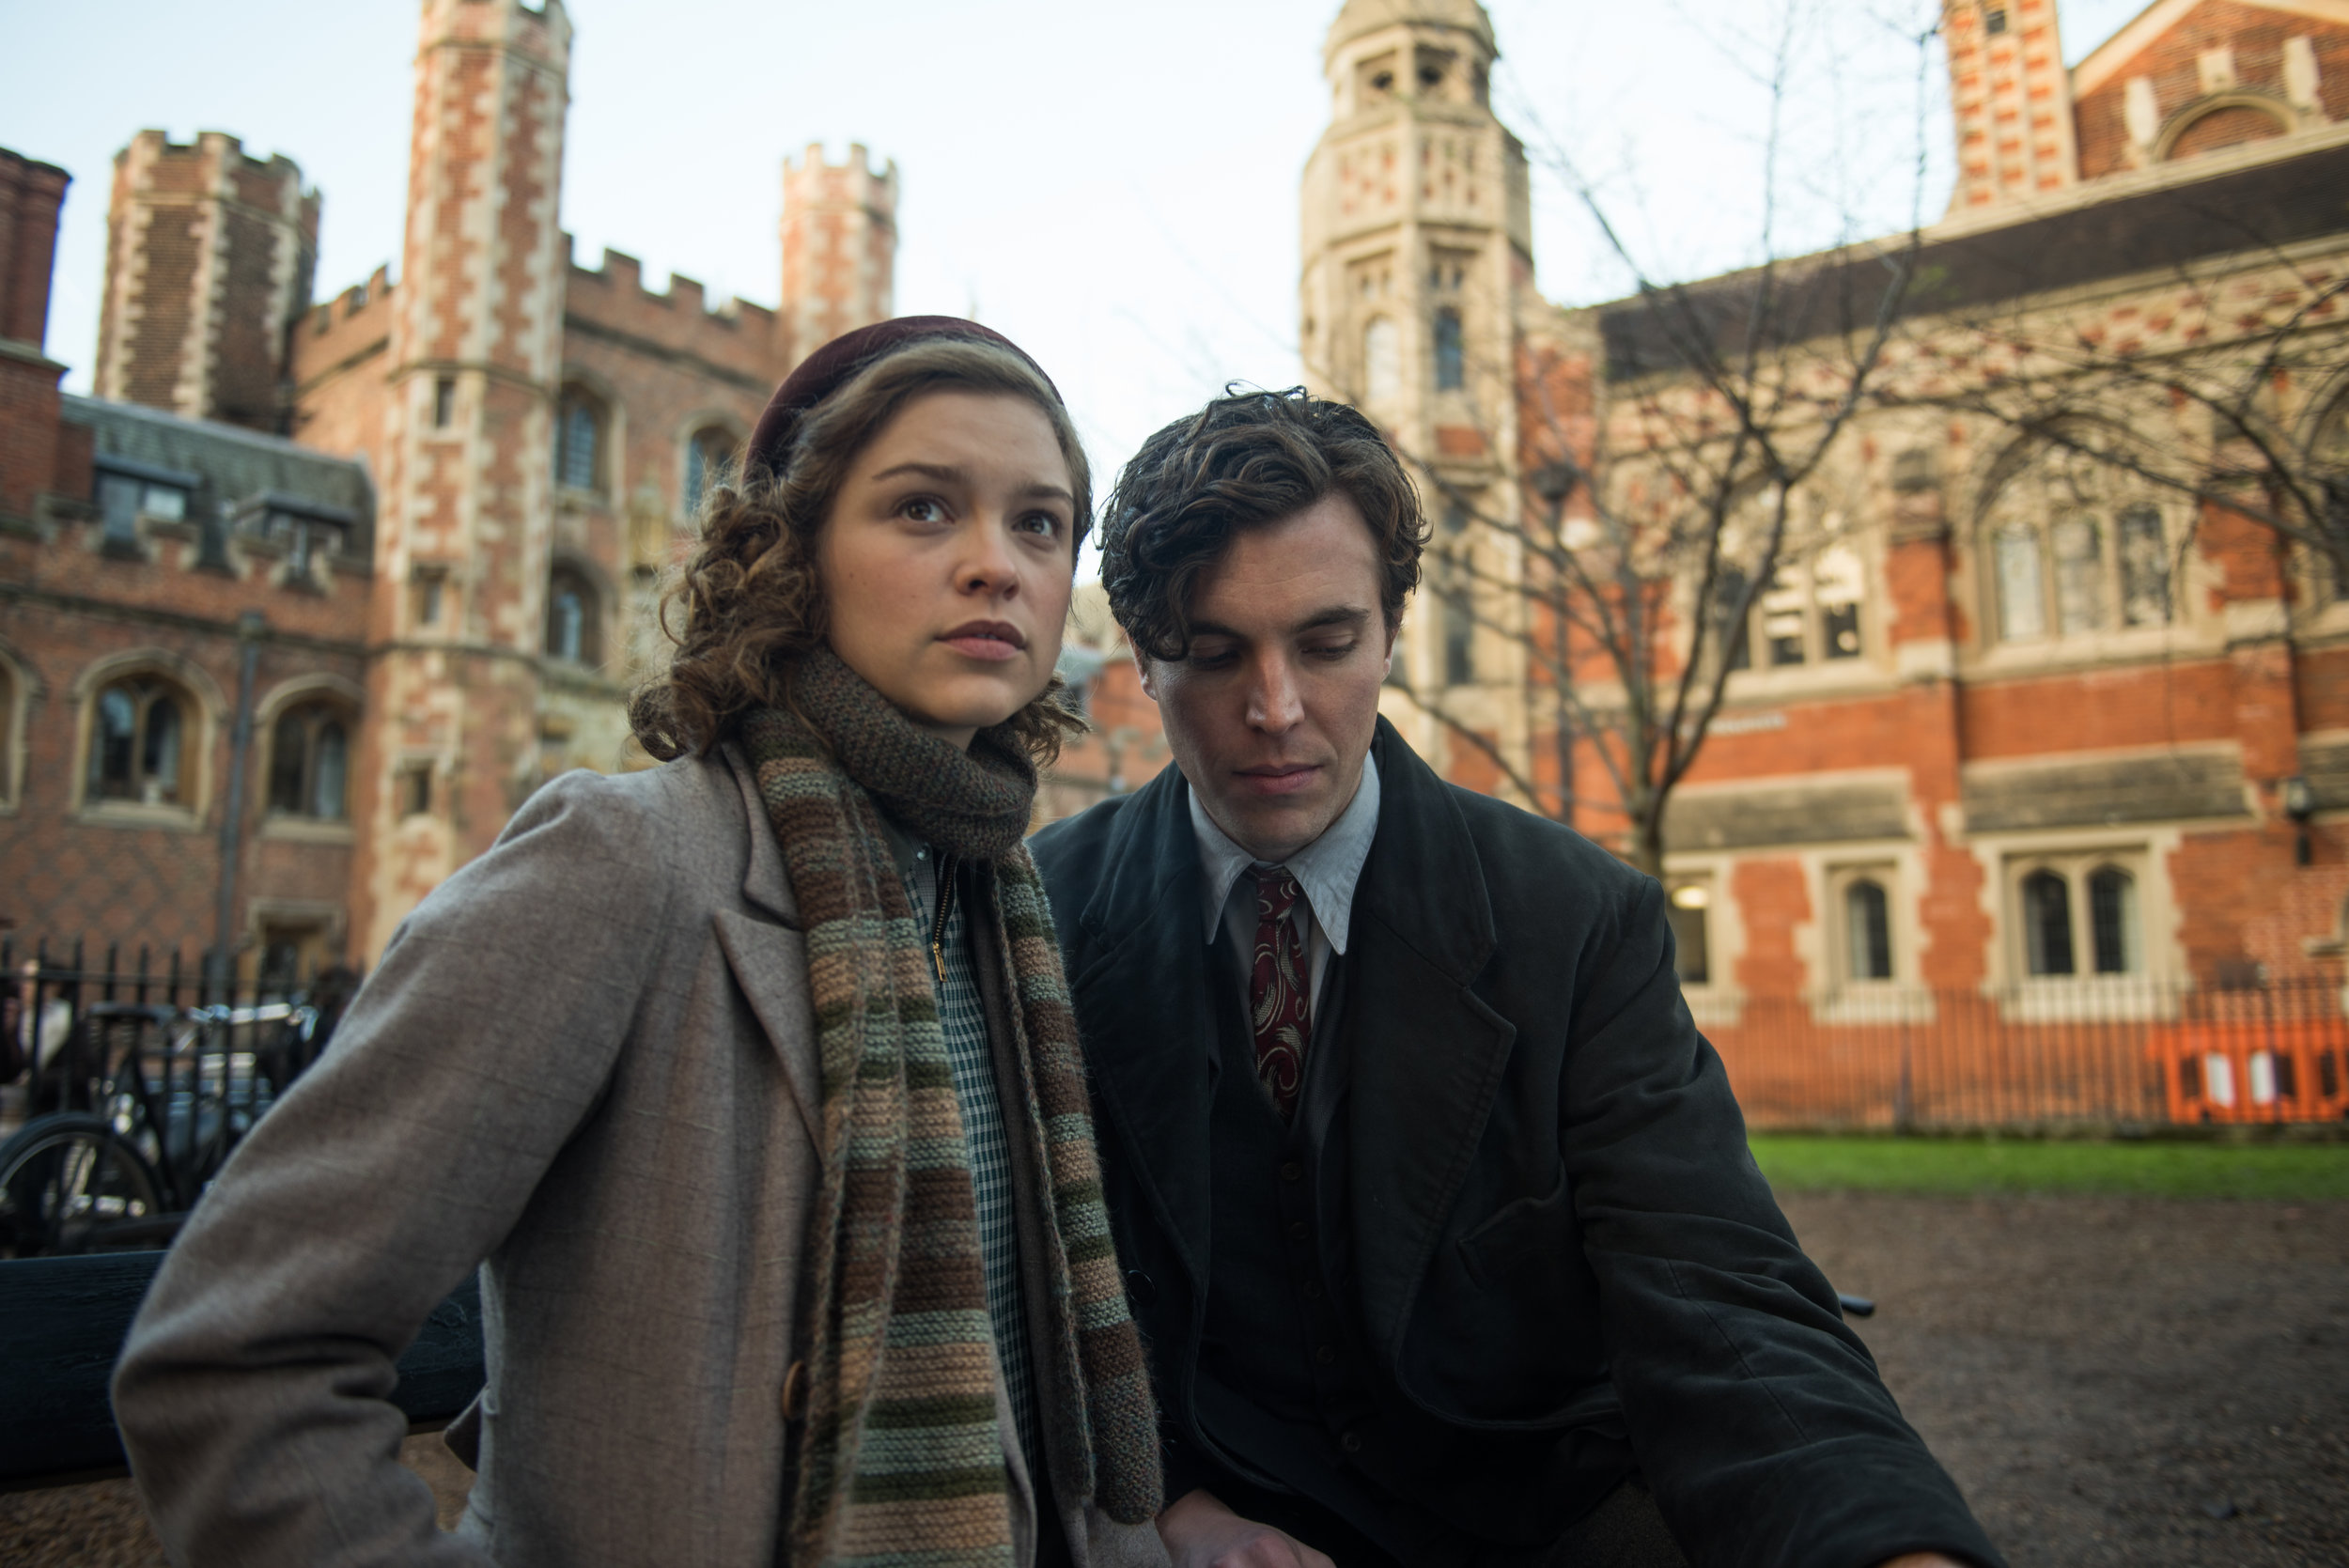 Physicist Sophie Cookson has sweet Stalinist nothings whispered in her ear by Tom Hughes in Red Joan